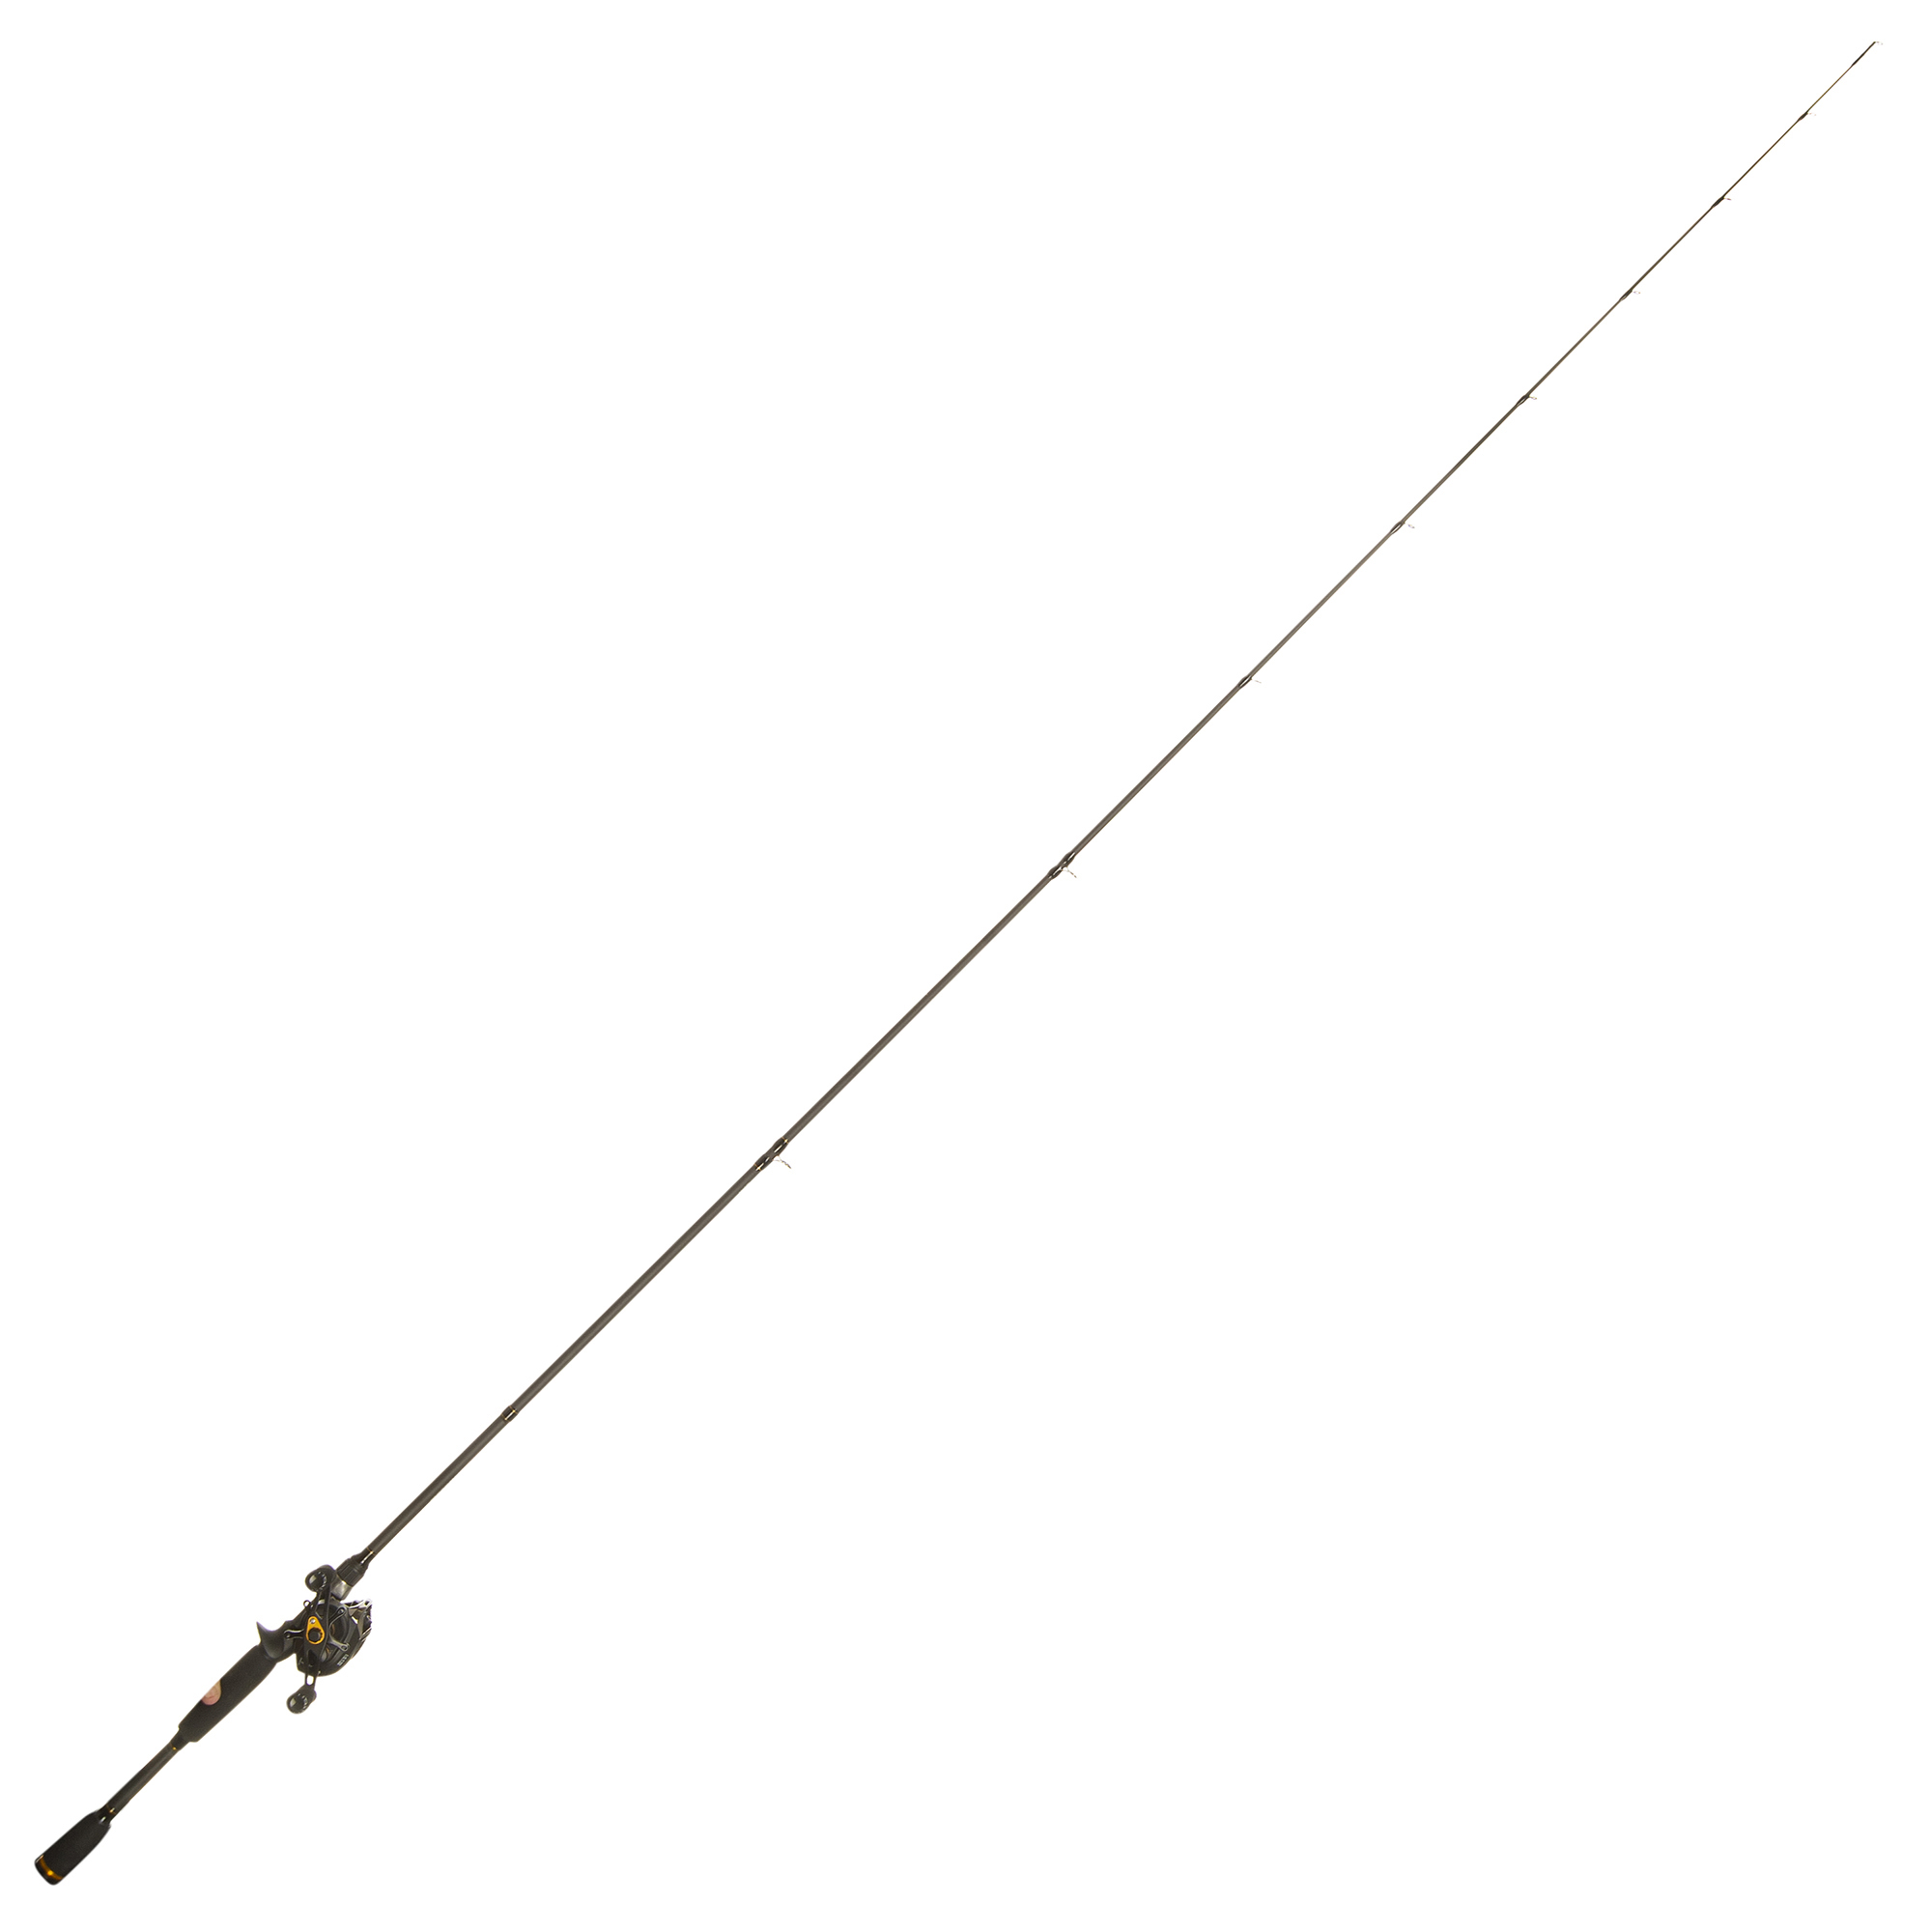 Sakana SK-BC9 Casting Combo, 7'0″ Medium-Heavy Right Hand